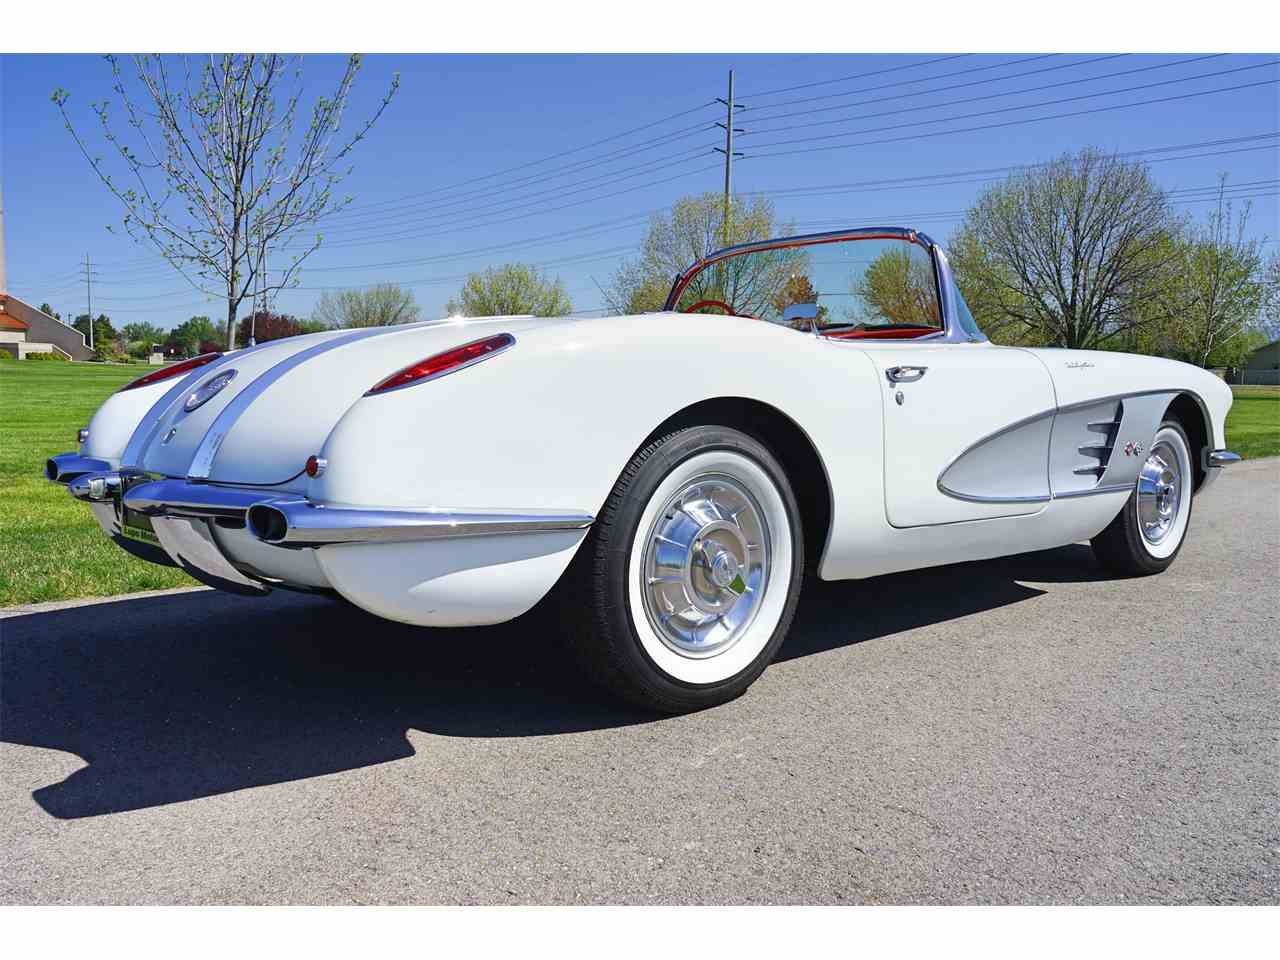 Large Picture of '58 Corvette located in Boise Idaho - $79,995.00 Offered by a Private Seller - NBDP